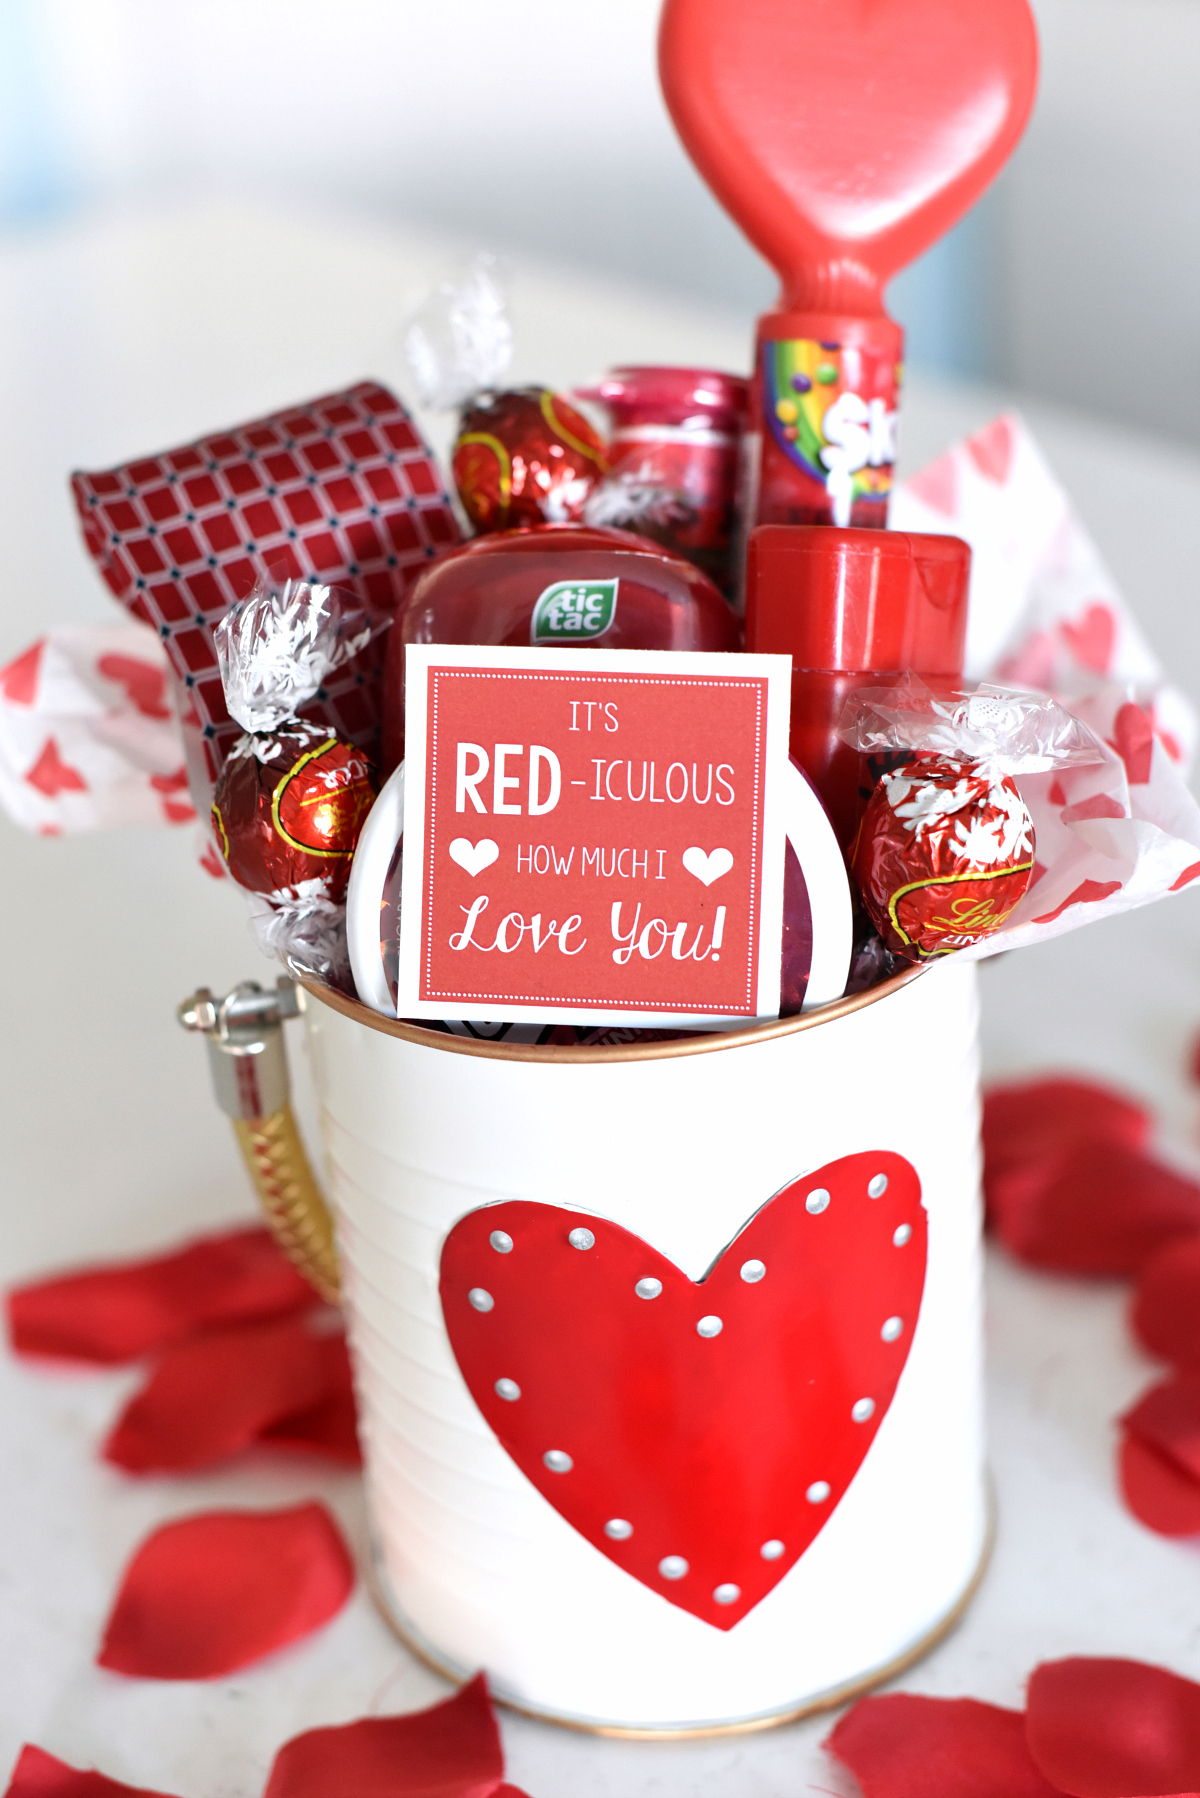 10 Most Recommended Valentines Day Ideas For Newlyweds fun ways to make valentines day special for your spouse fun squared 2020